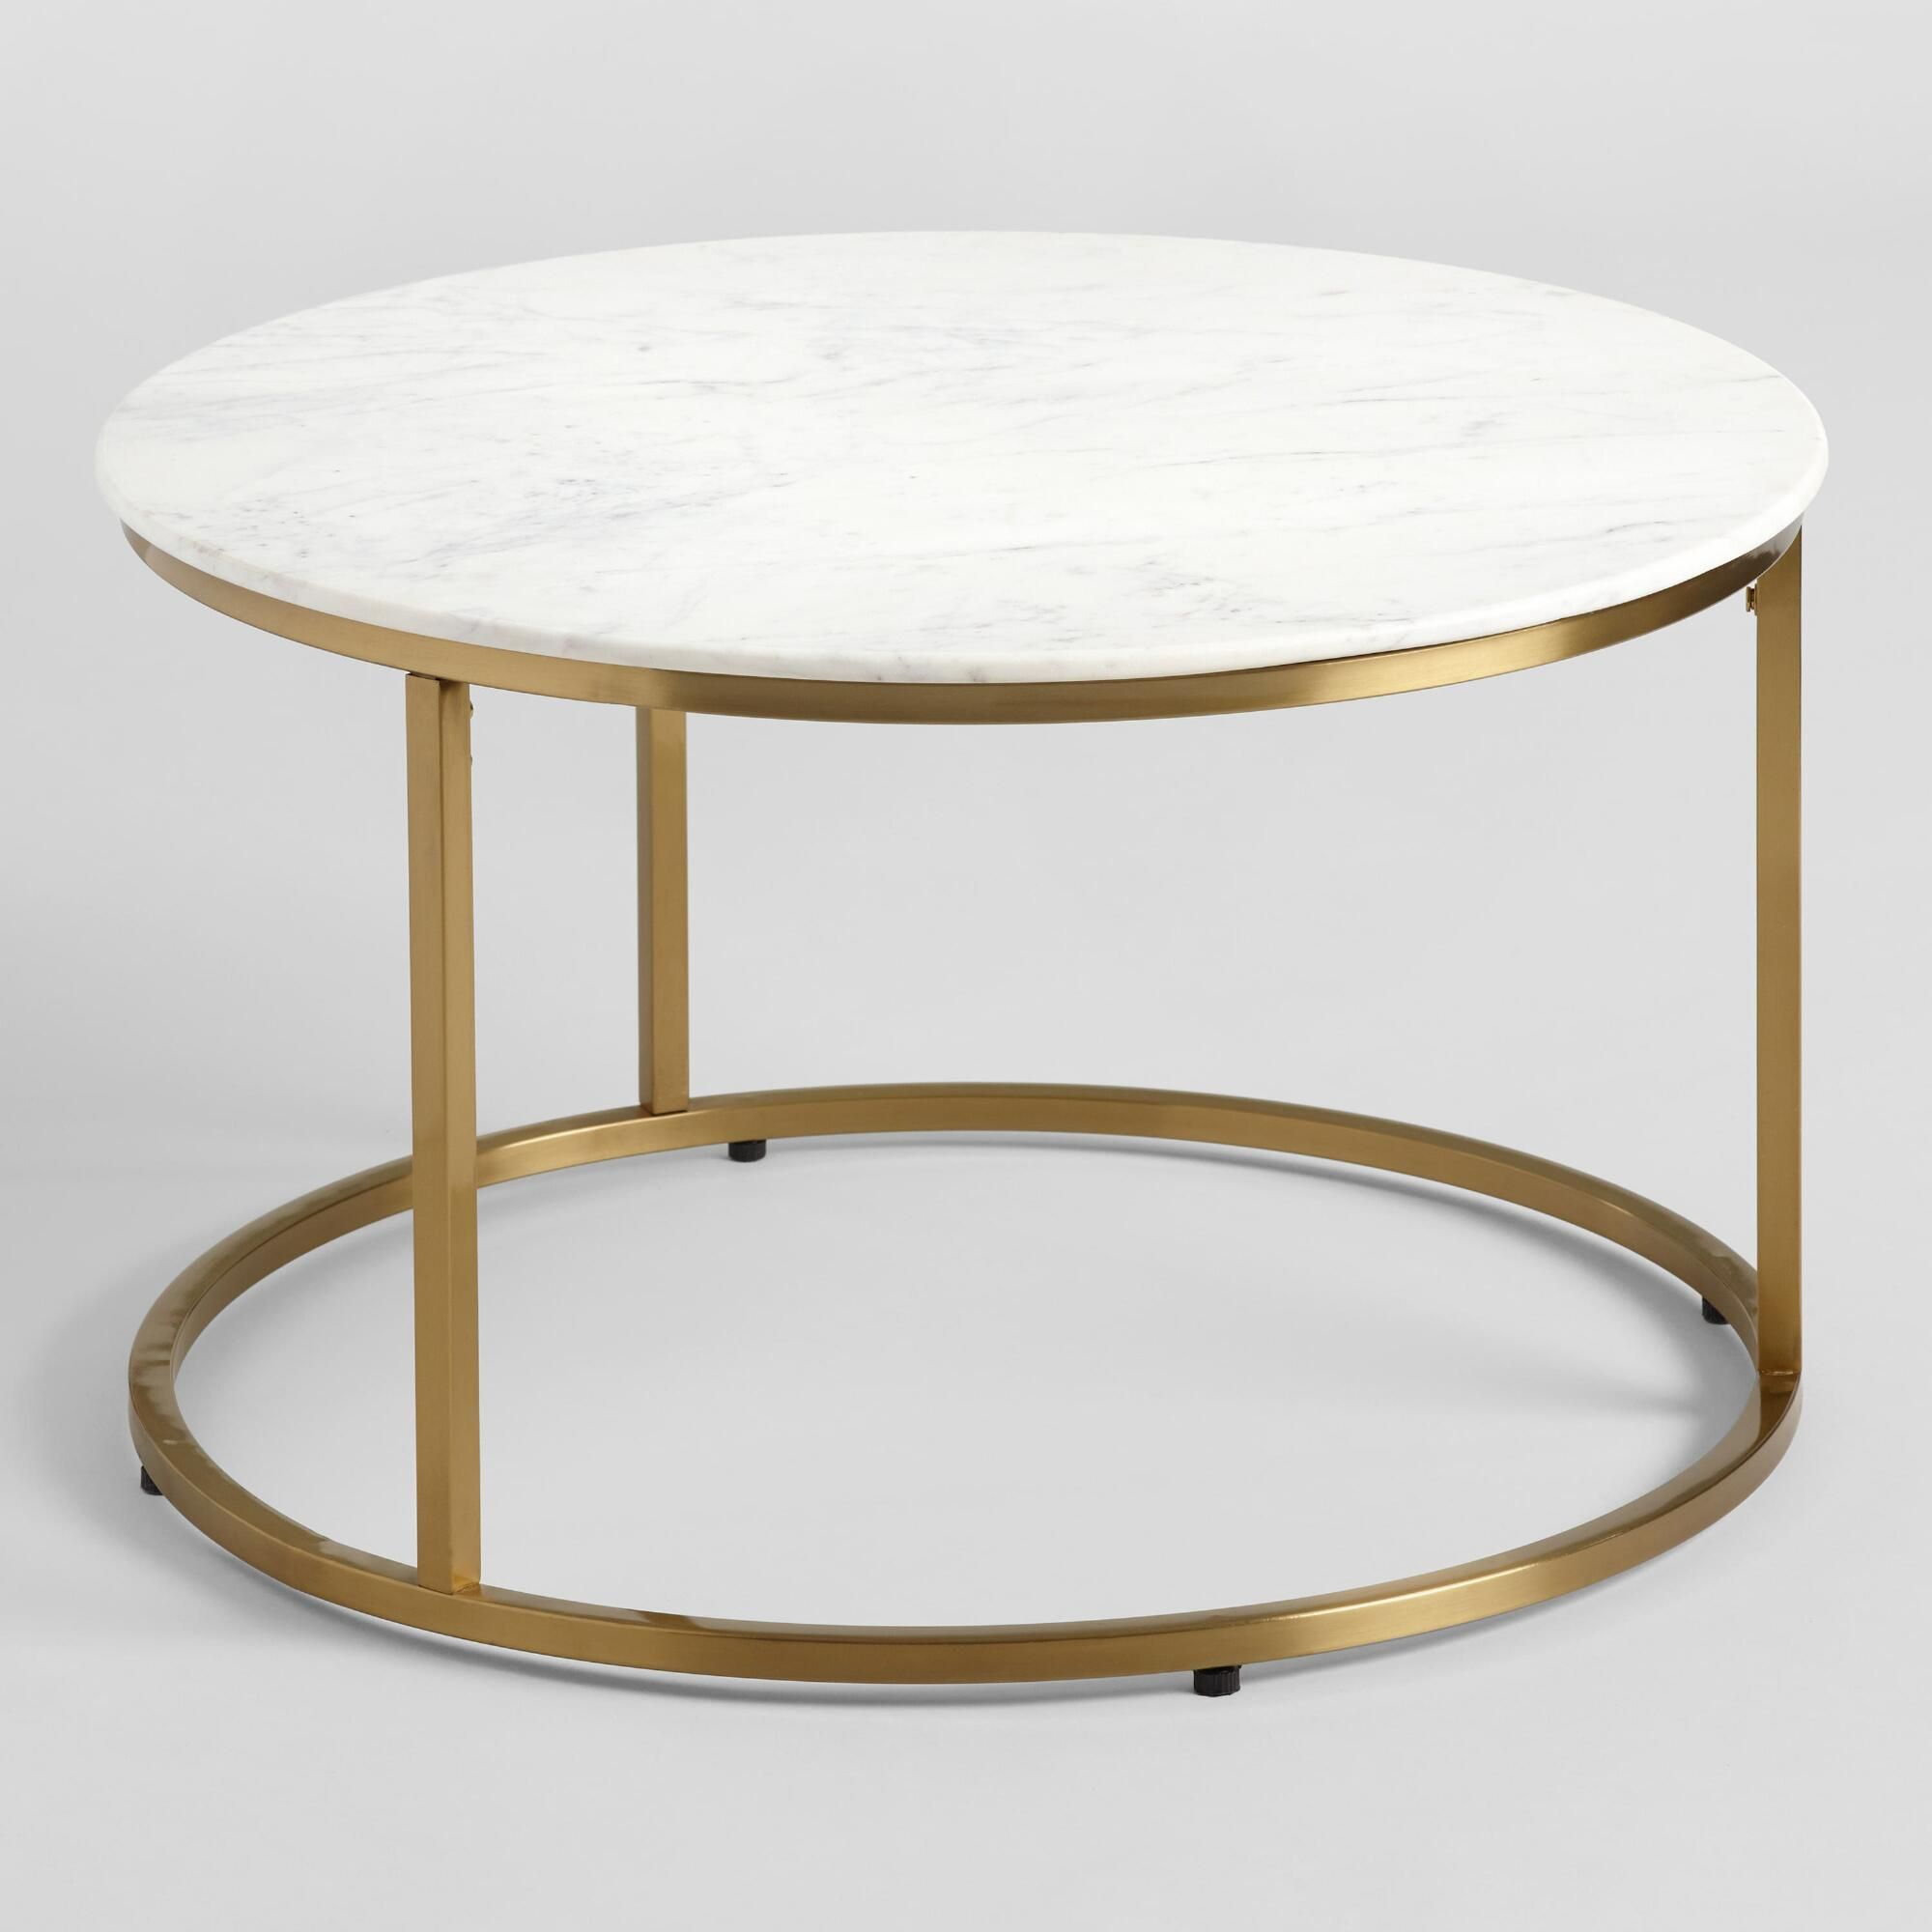 Round White Marble Milan Coffee Table By World Market Coffee Table Gold Coffee Table Marble Round Coffee Table [ 2000 x 2000 Pixel ]